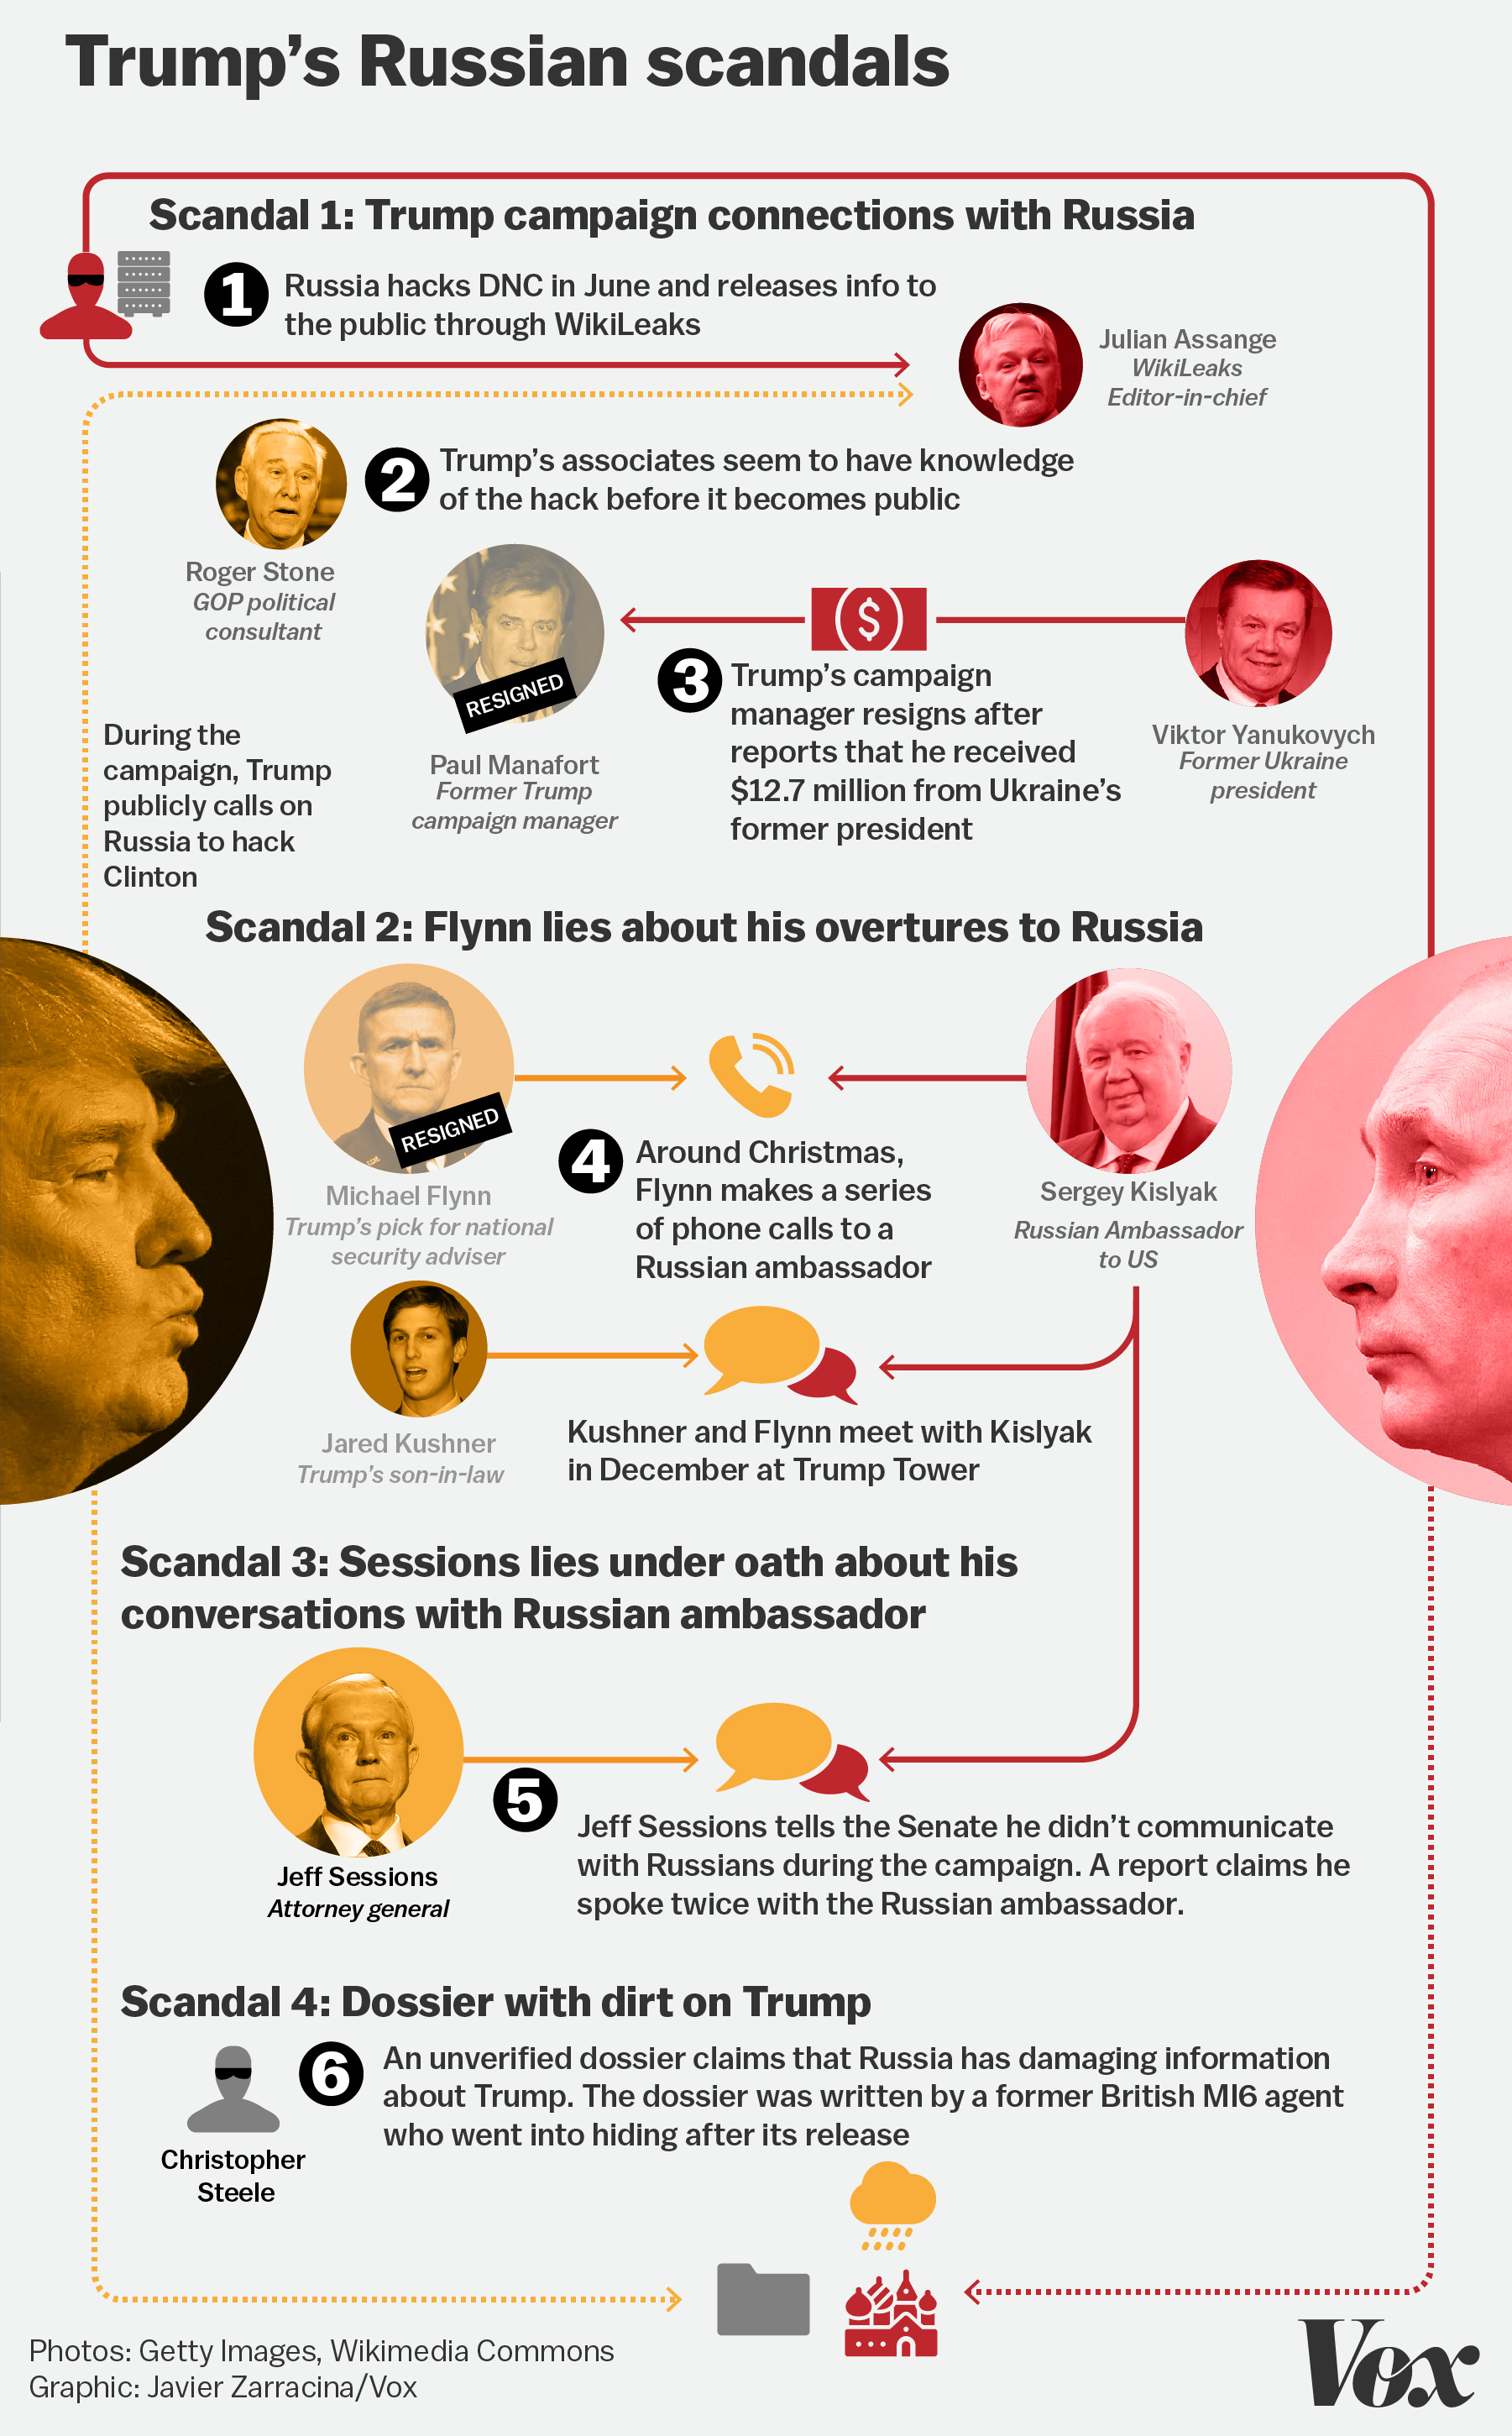 The Trump-Russia scandals: a quick visual guide